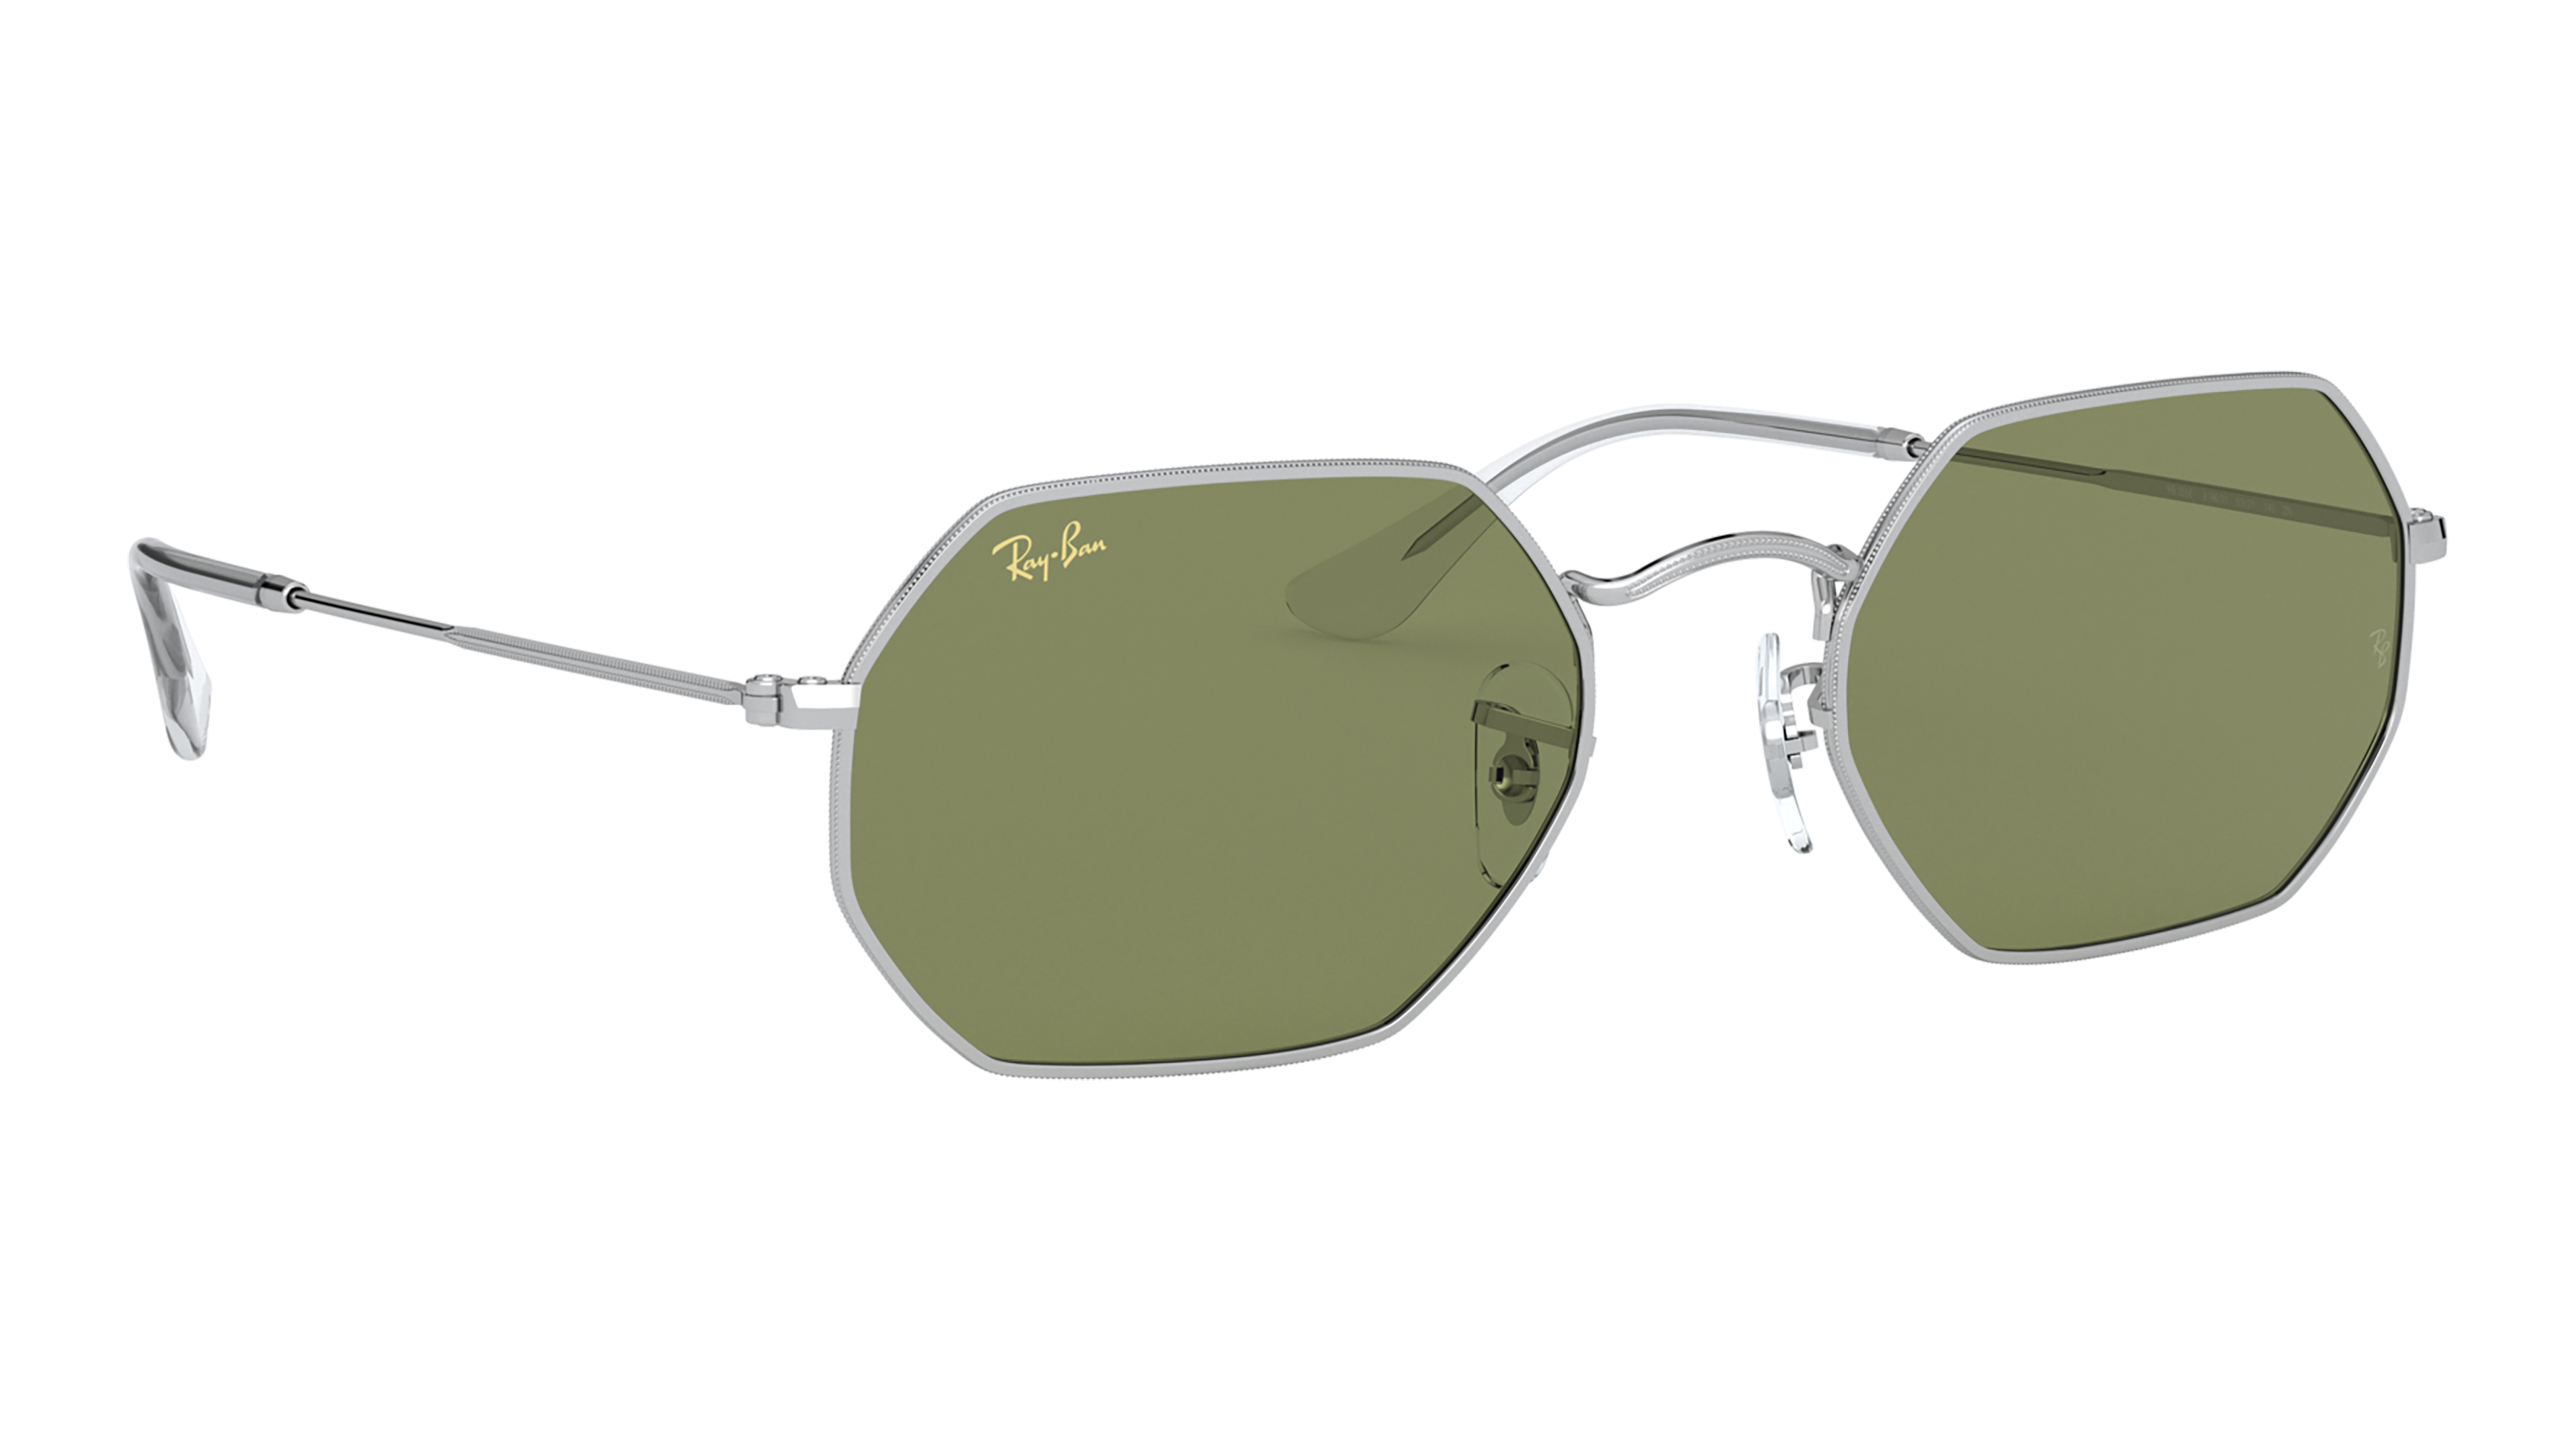 Angle_Right02 Ray-Ban Ray-Ban 0RB3556 91984E 53/21 Zilver/Groen